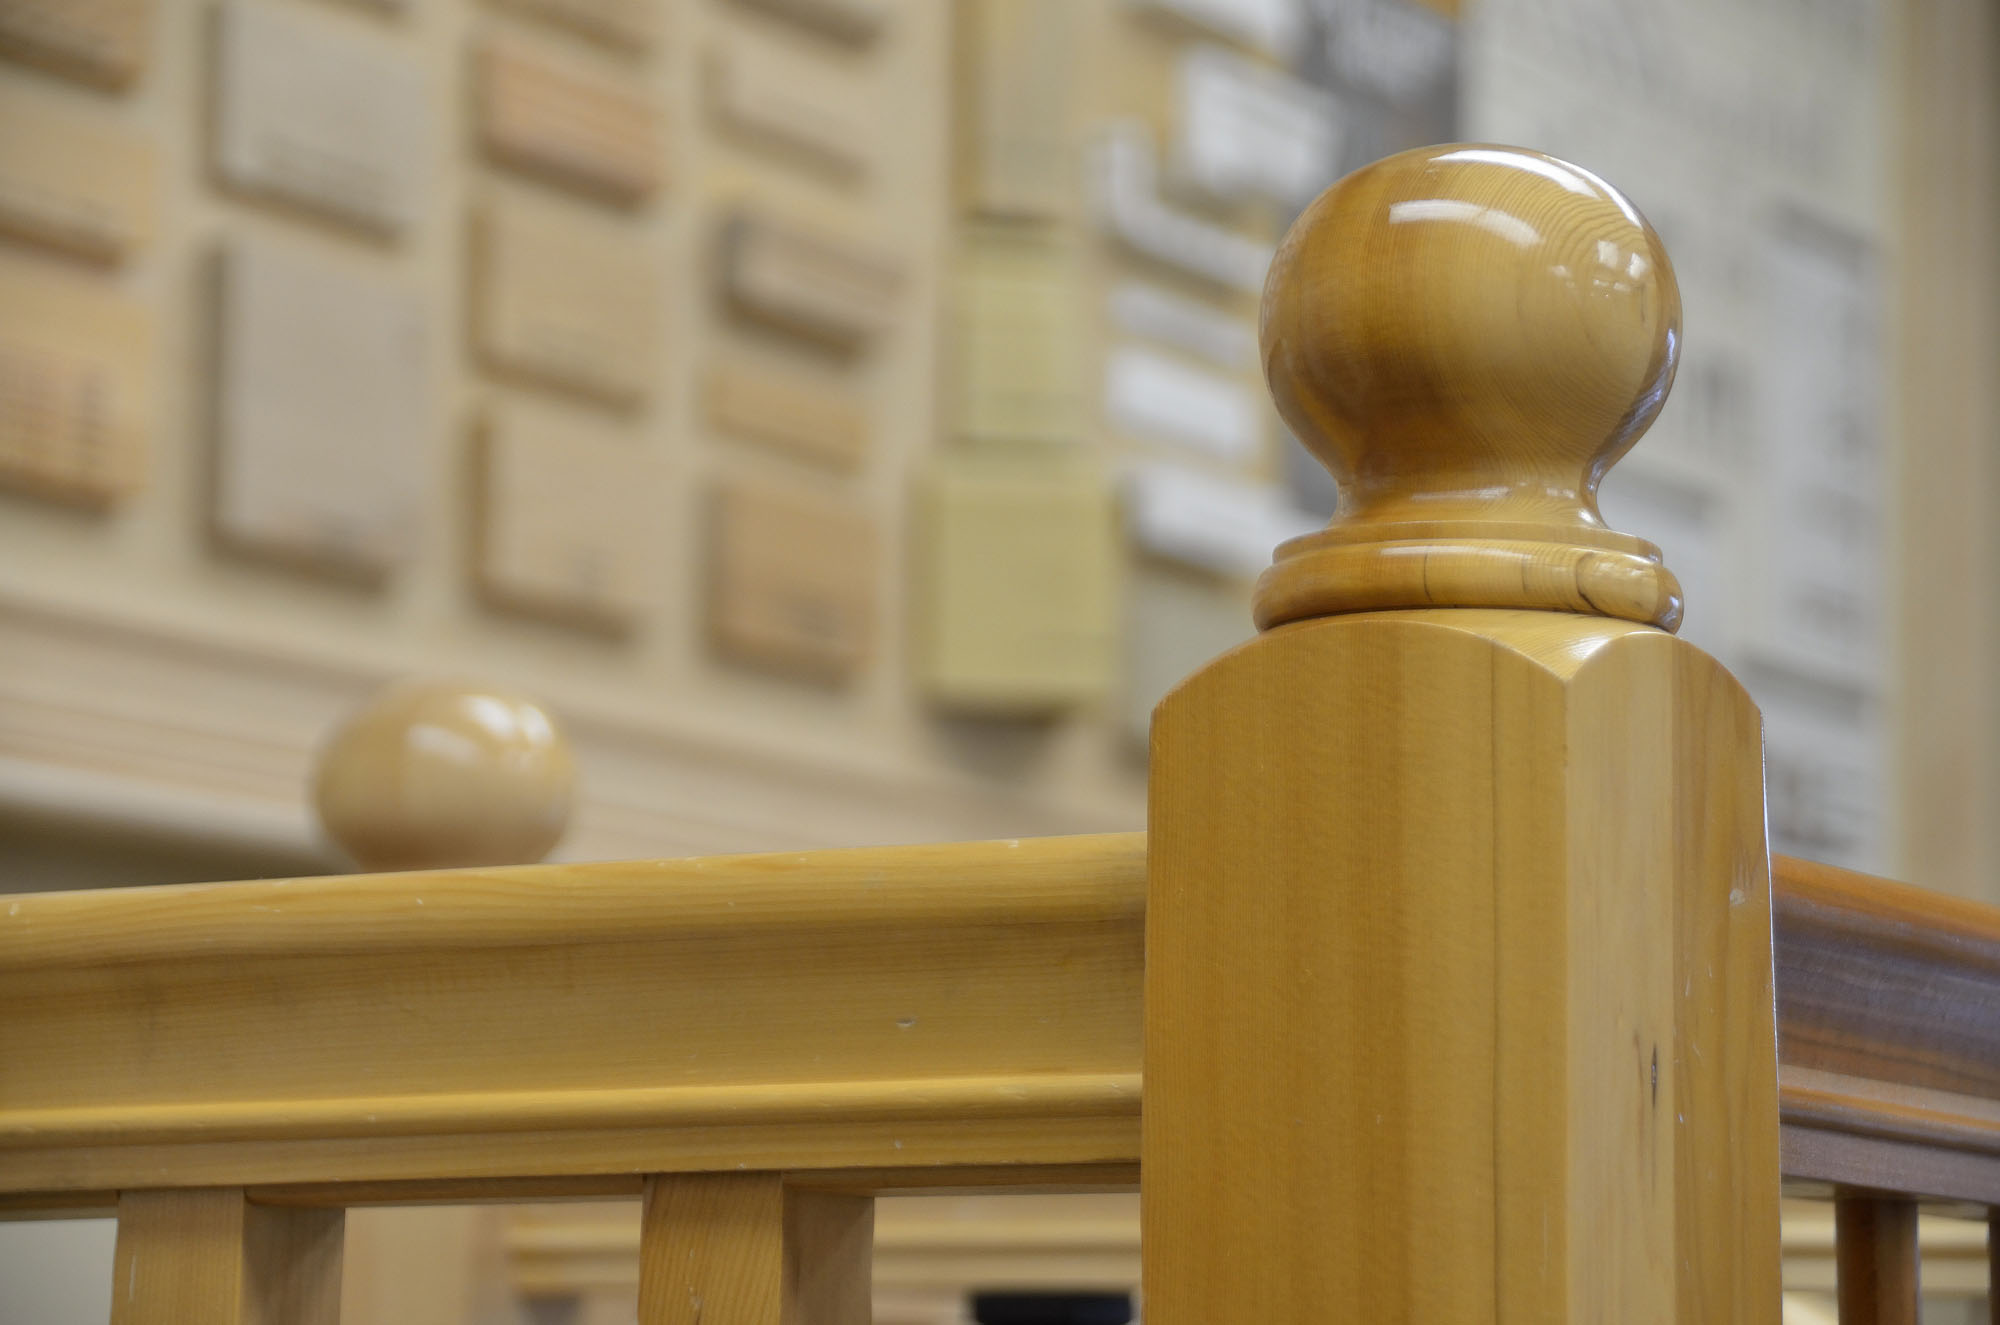 Delightful Builders Millwork Supply Carries Stylish Stair Accessories And Components